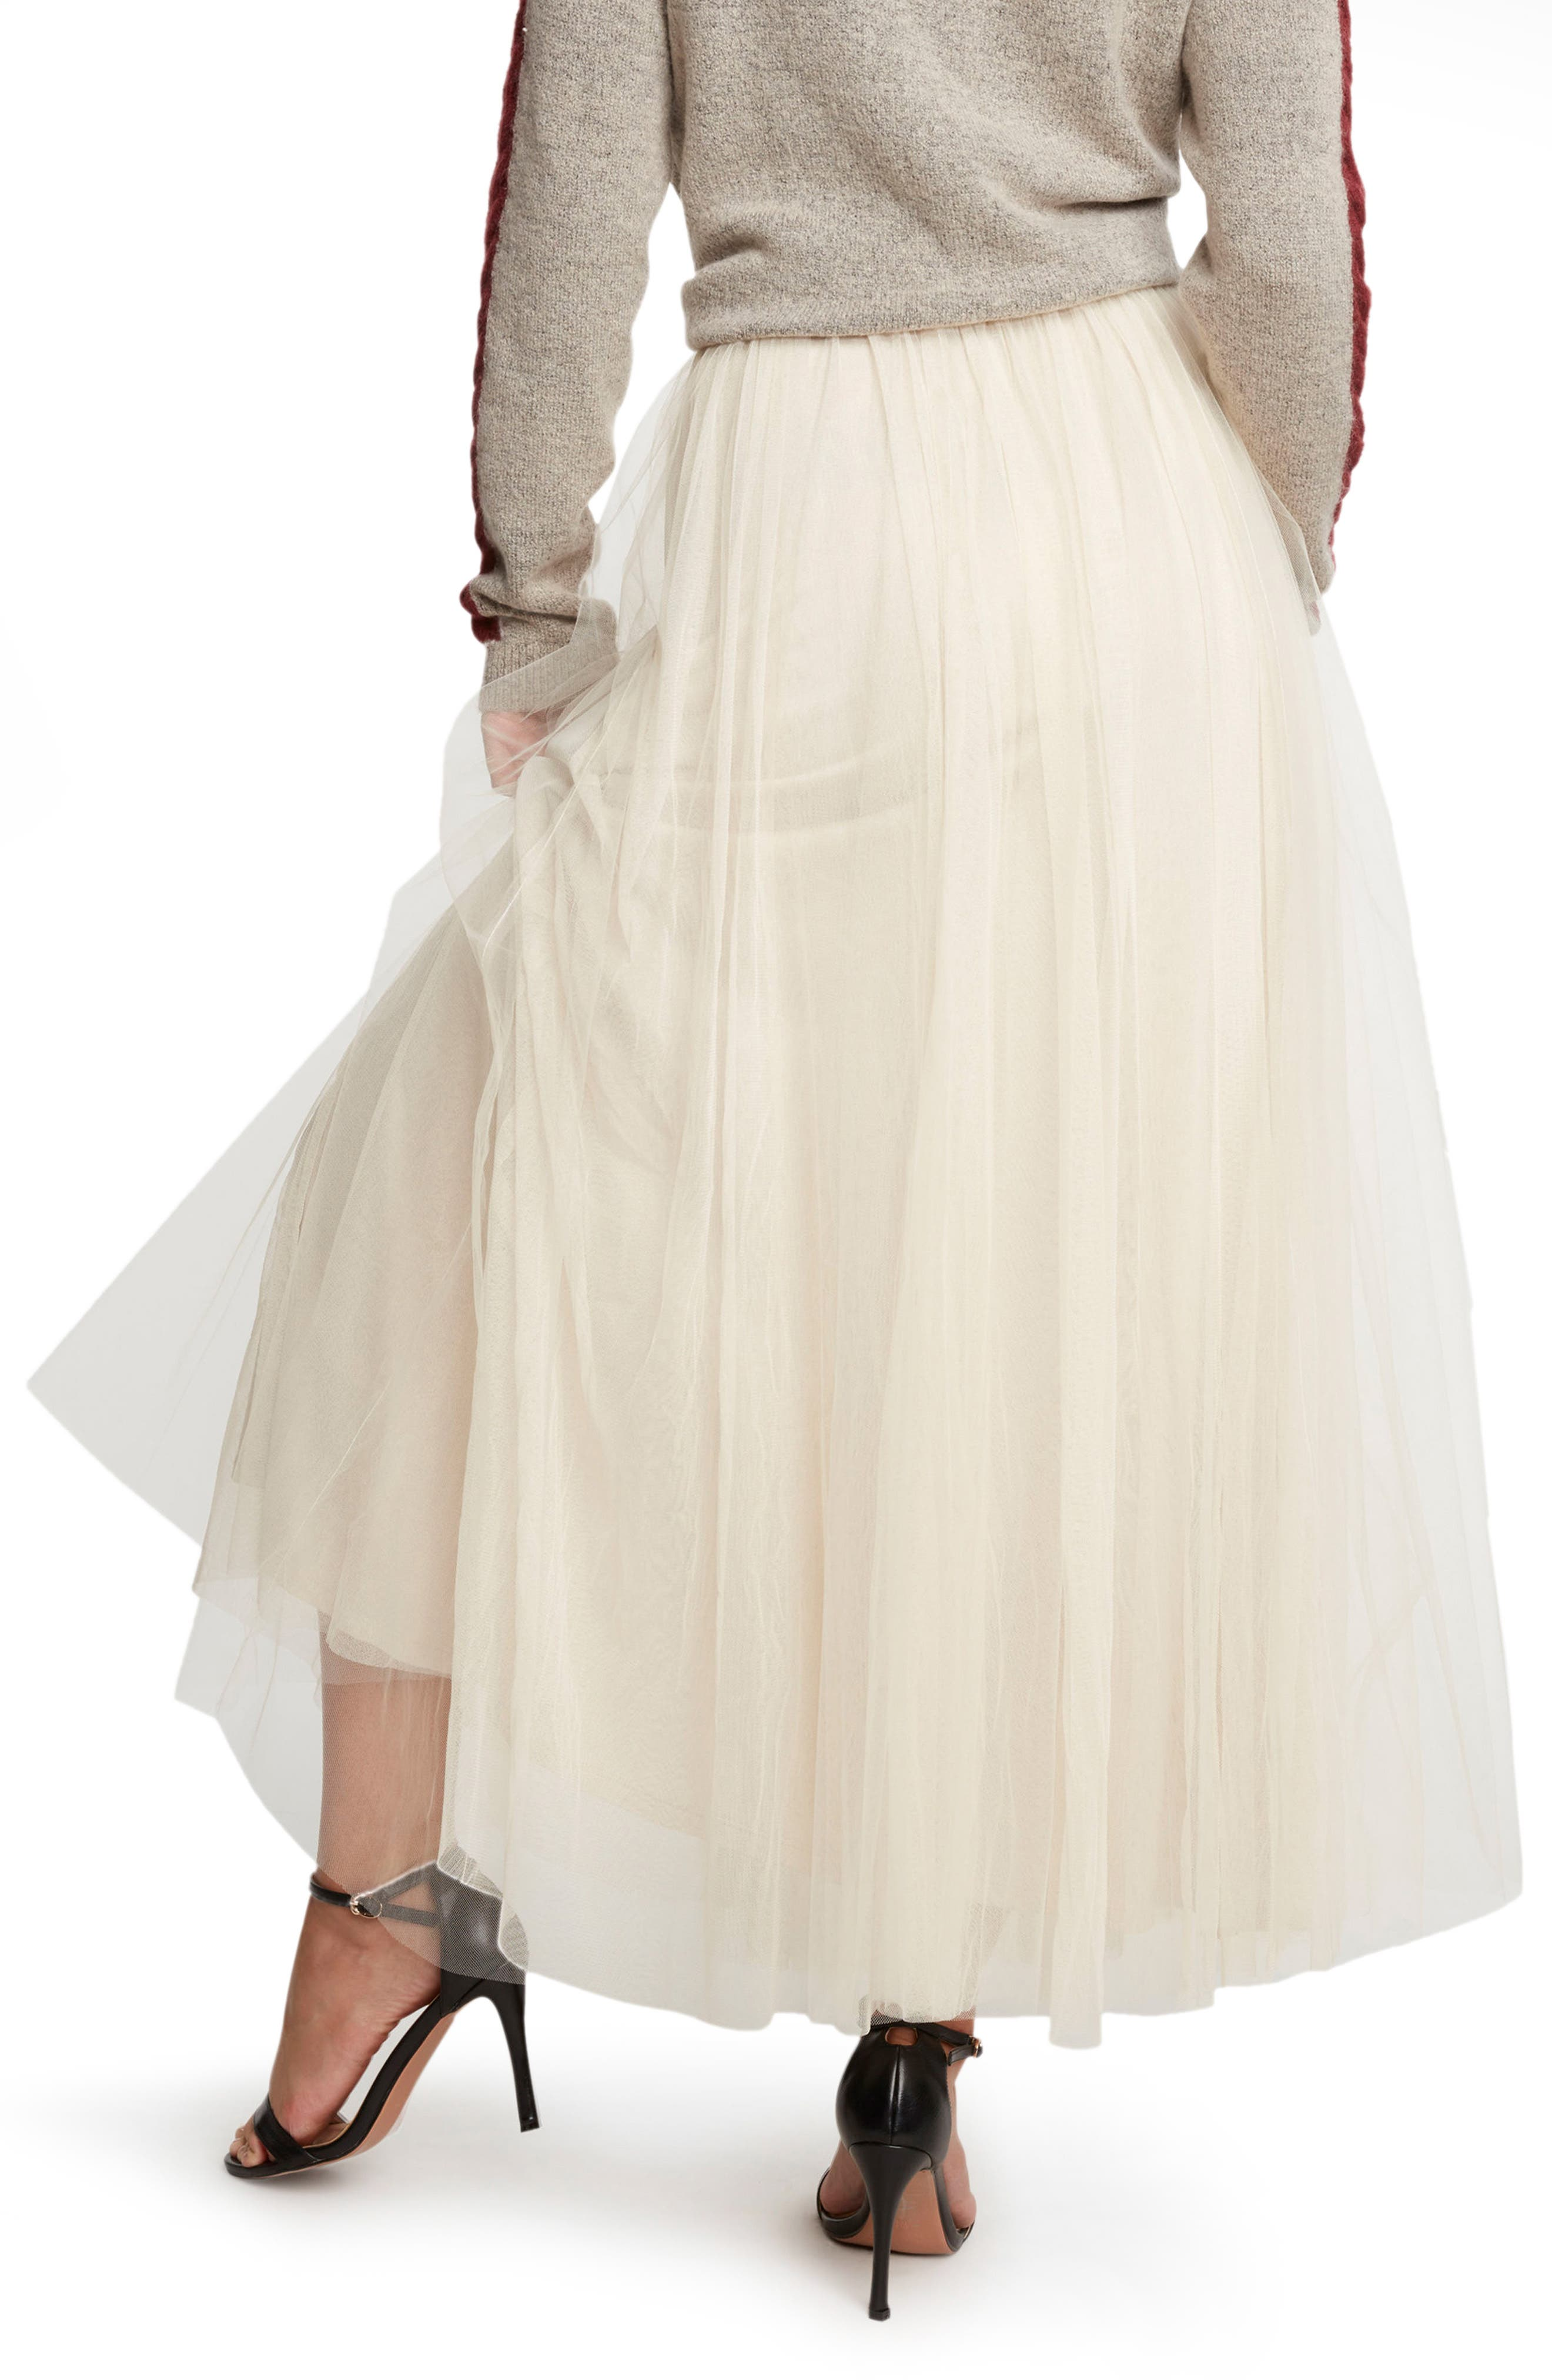 WILLOW & CLAY, Tulle Midi Skirt, Alternate thumbnail 2, color, 901